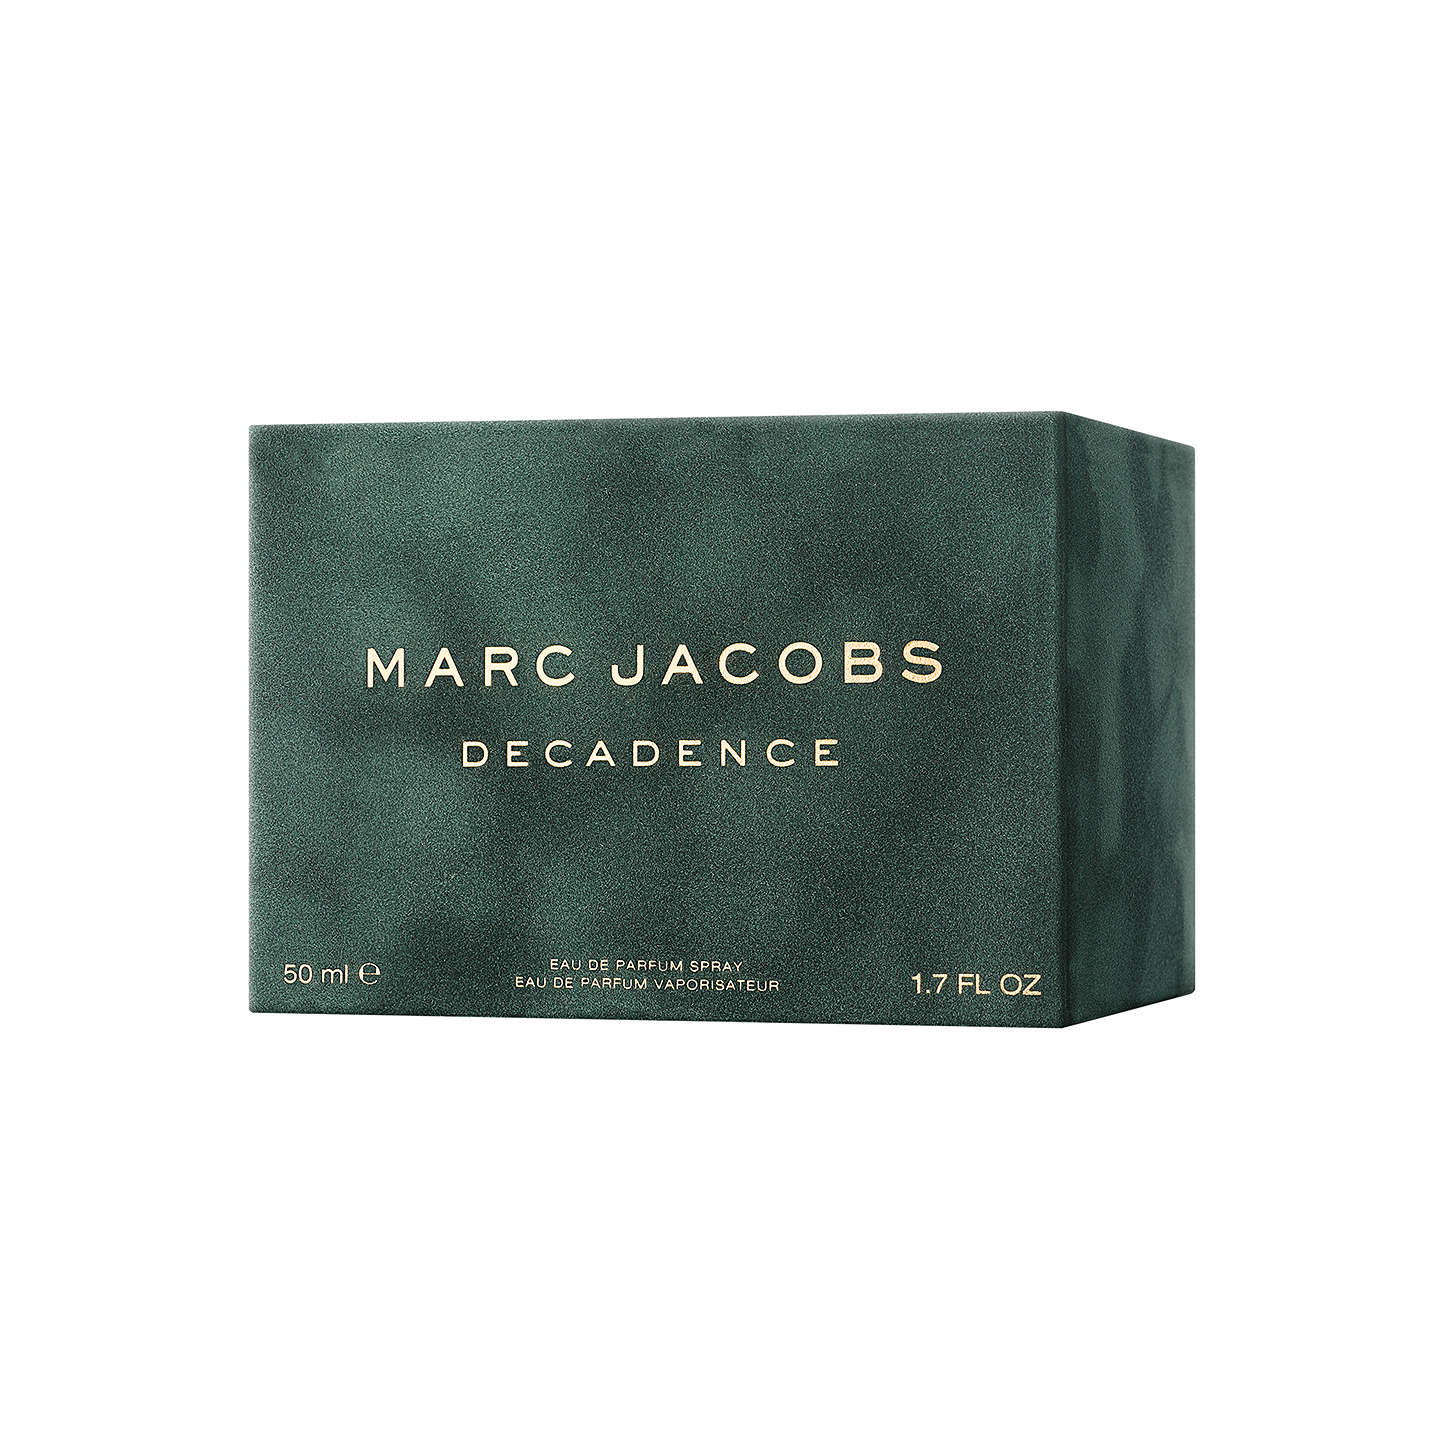 BuyMarc Jacobs Decadence Eau de Parfum, 50ml Online at johnlewis.com